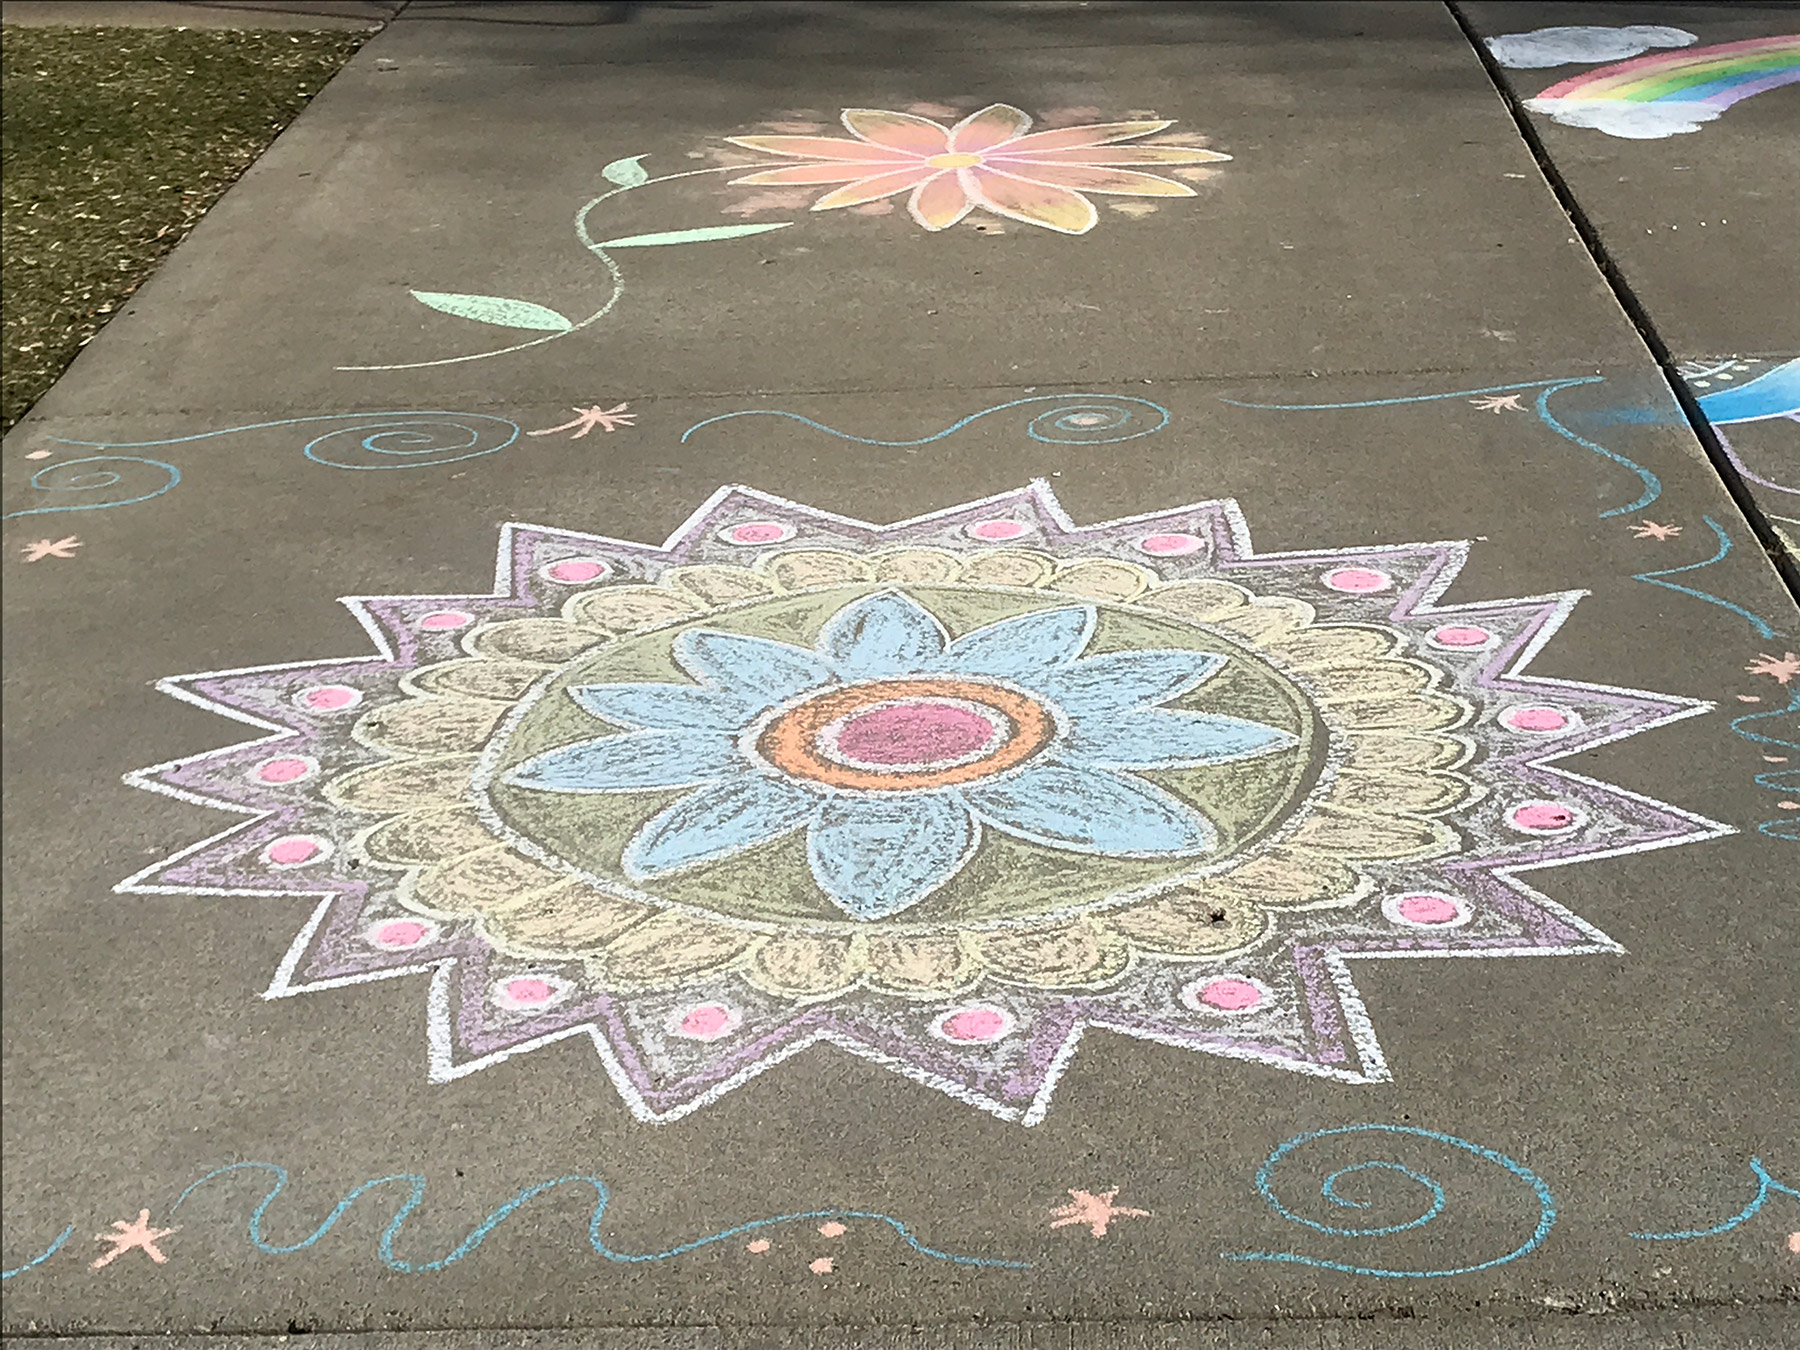 Sidewalk chalk designs